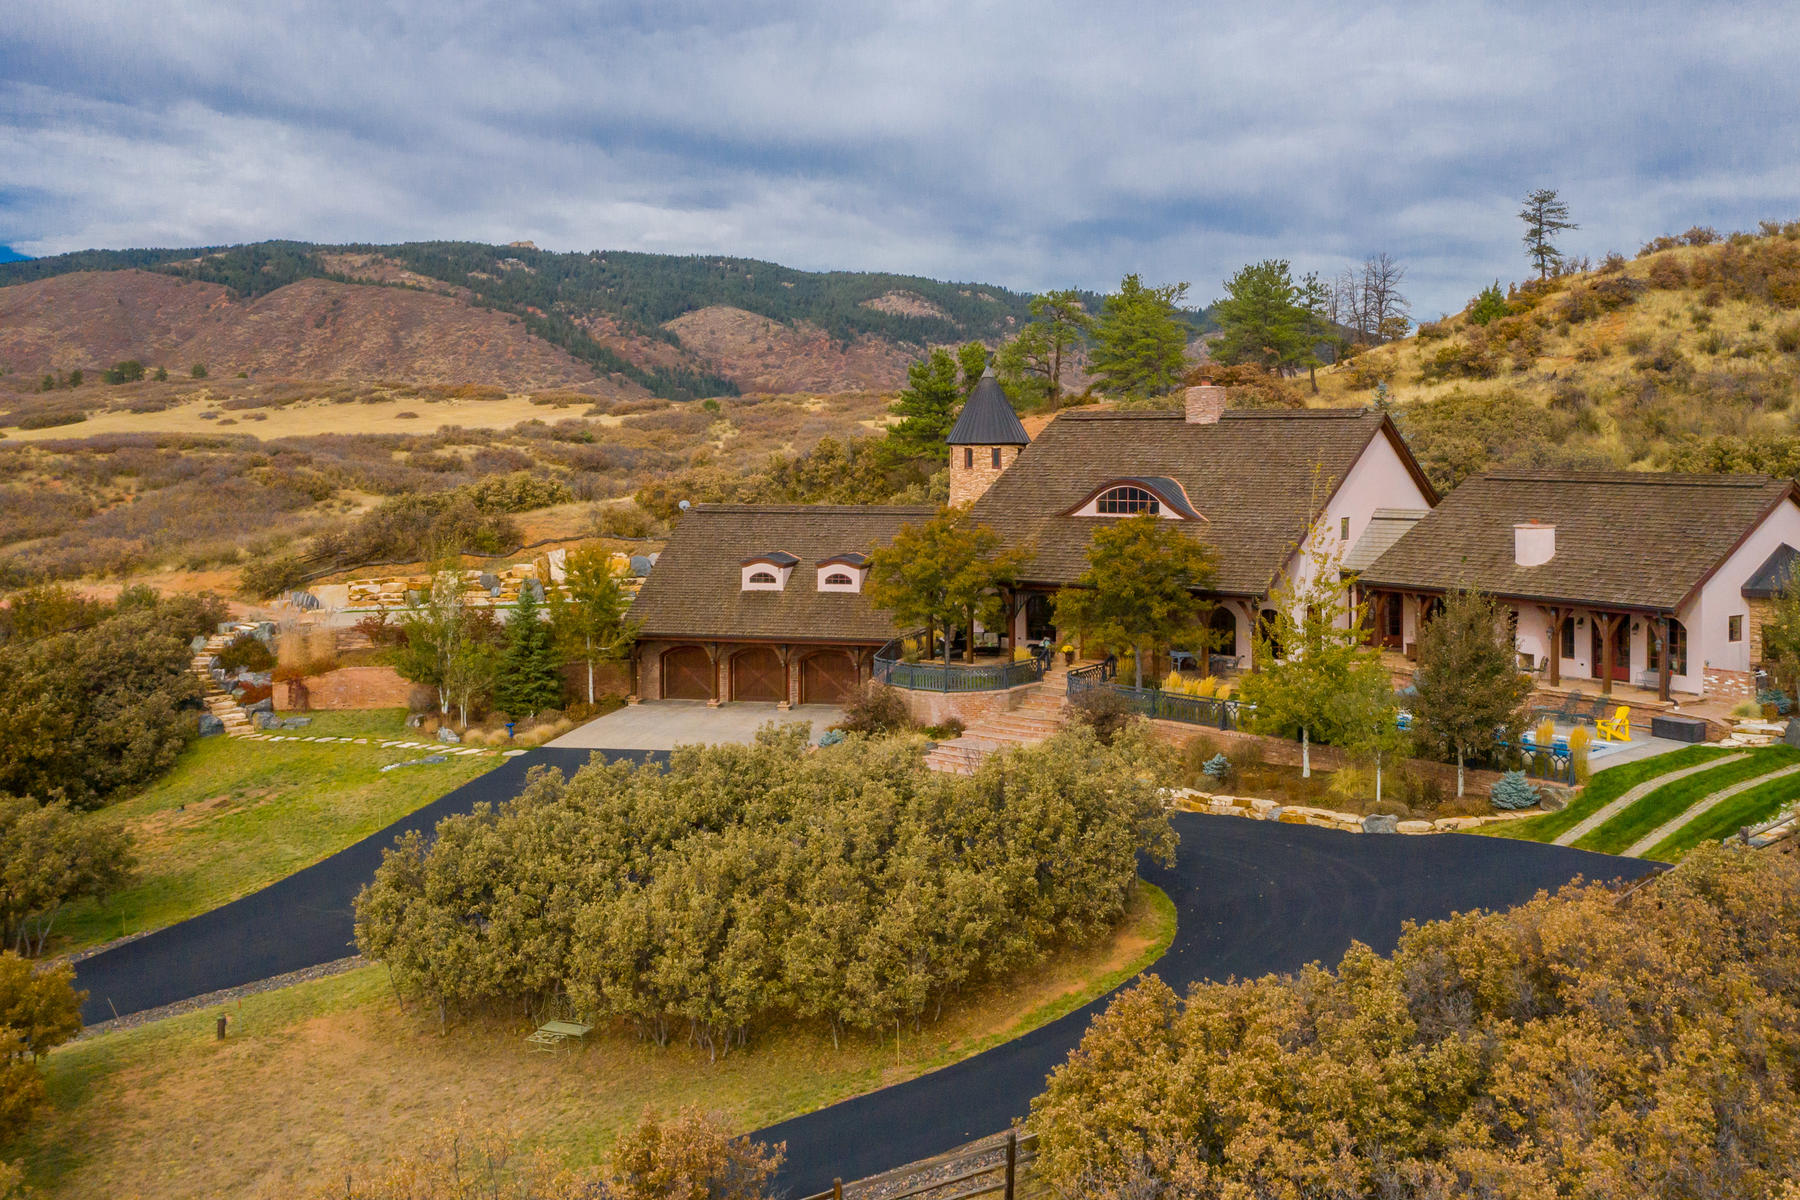 Single Family Homes for Sale at 242 Acre Ranch - Escape the Hustle of the World 6501 Jackson Creek Road Sedalia, Colorado 80135 United States